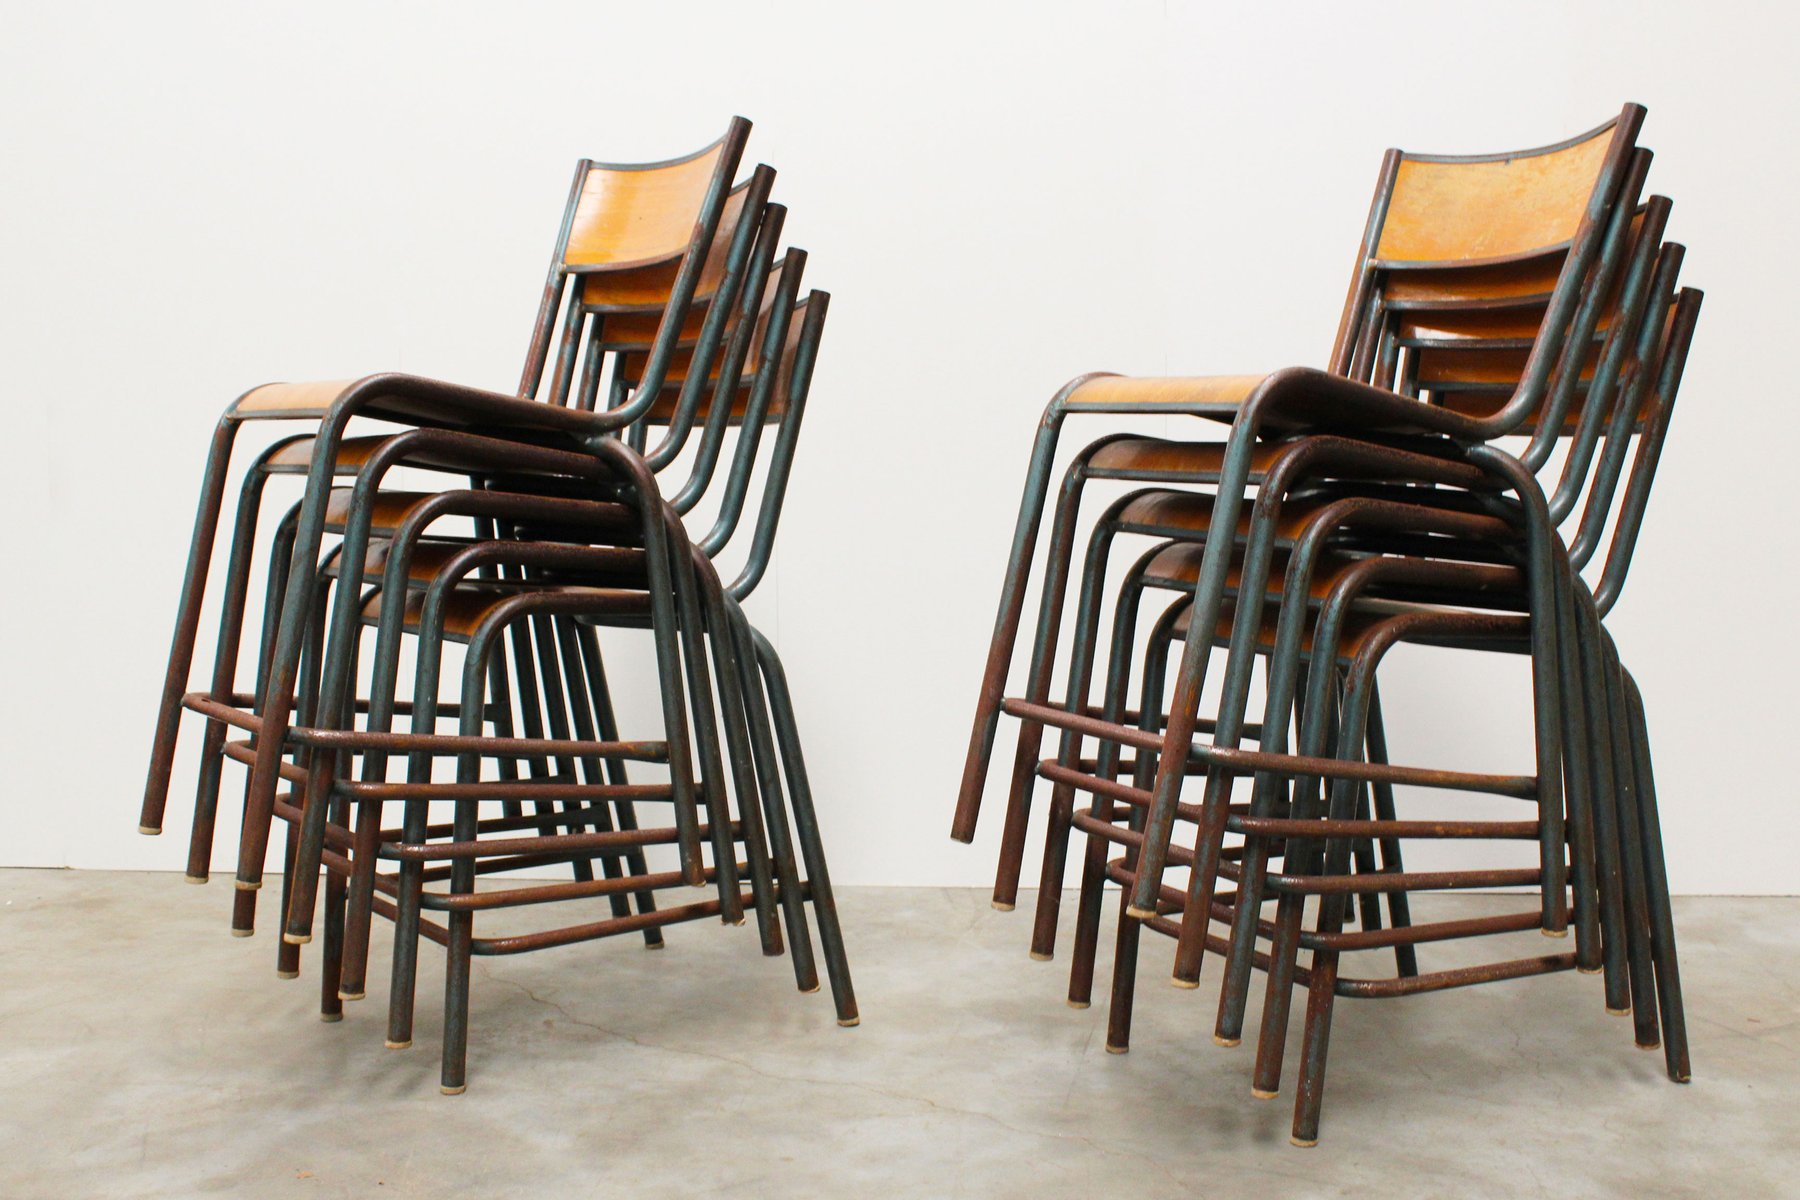 Vintage Industrial French School Chairs From Mullca, 1950s, Set Of 6 For  Sale At Pamono